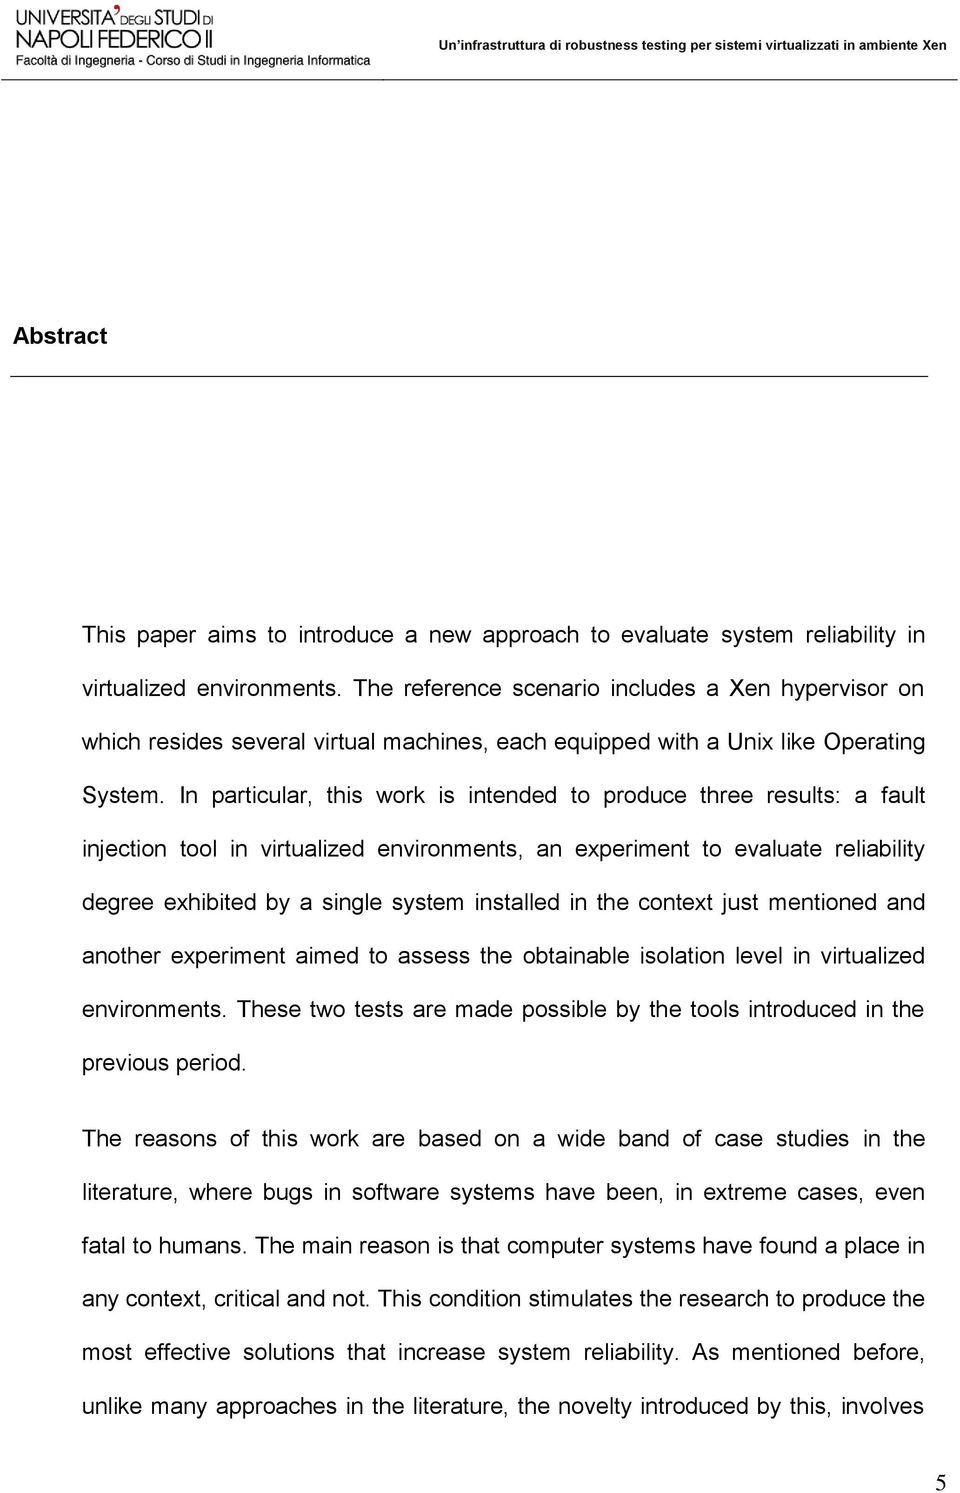 In particular, this work is intended to produce three results: a fault injection tool in virtualized environments, an experiment to evaluate reliability degree exhibited by a single system installed